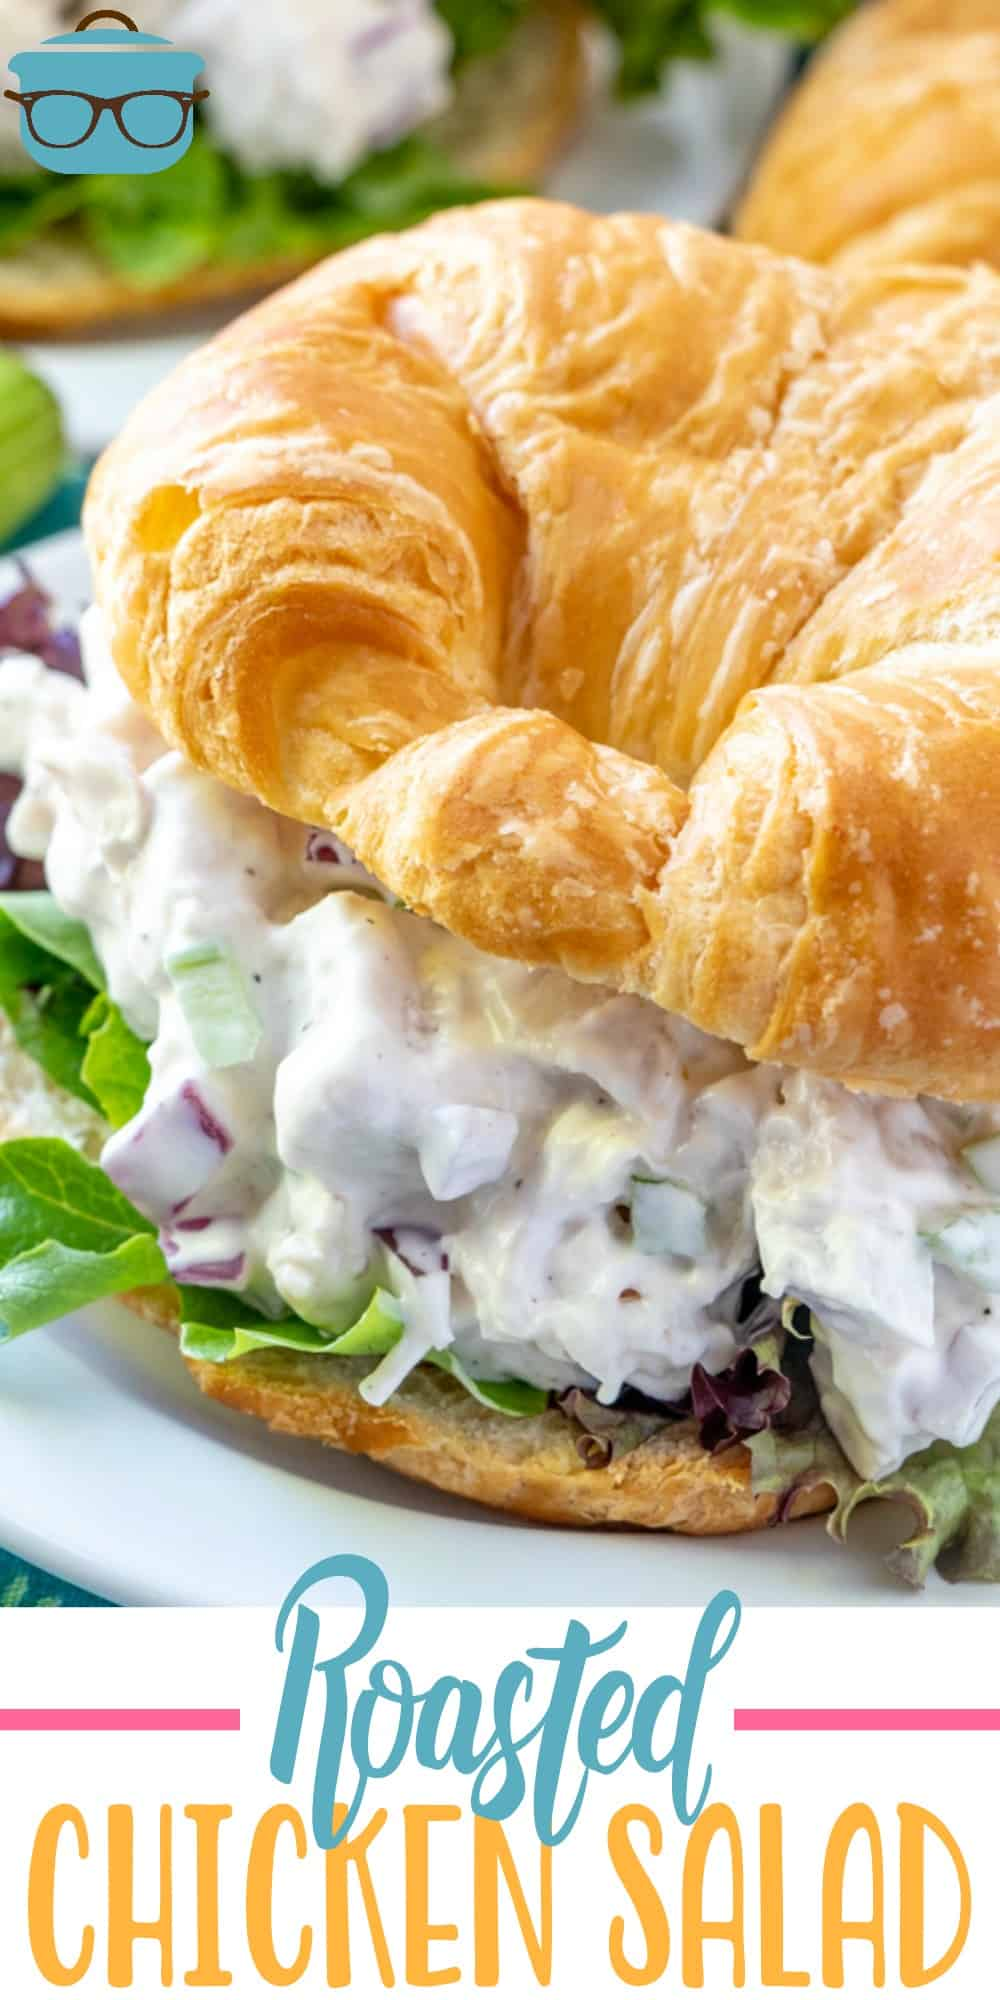 Easy Roasted Chicken Salad is the best chicken salad recipe ever. Mayonnaise, celery, onions and special seasoning makes this a huge favorite! #chickensalad #sandwich